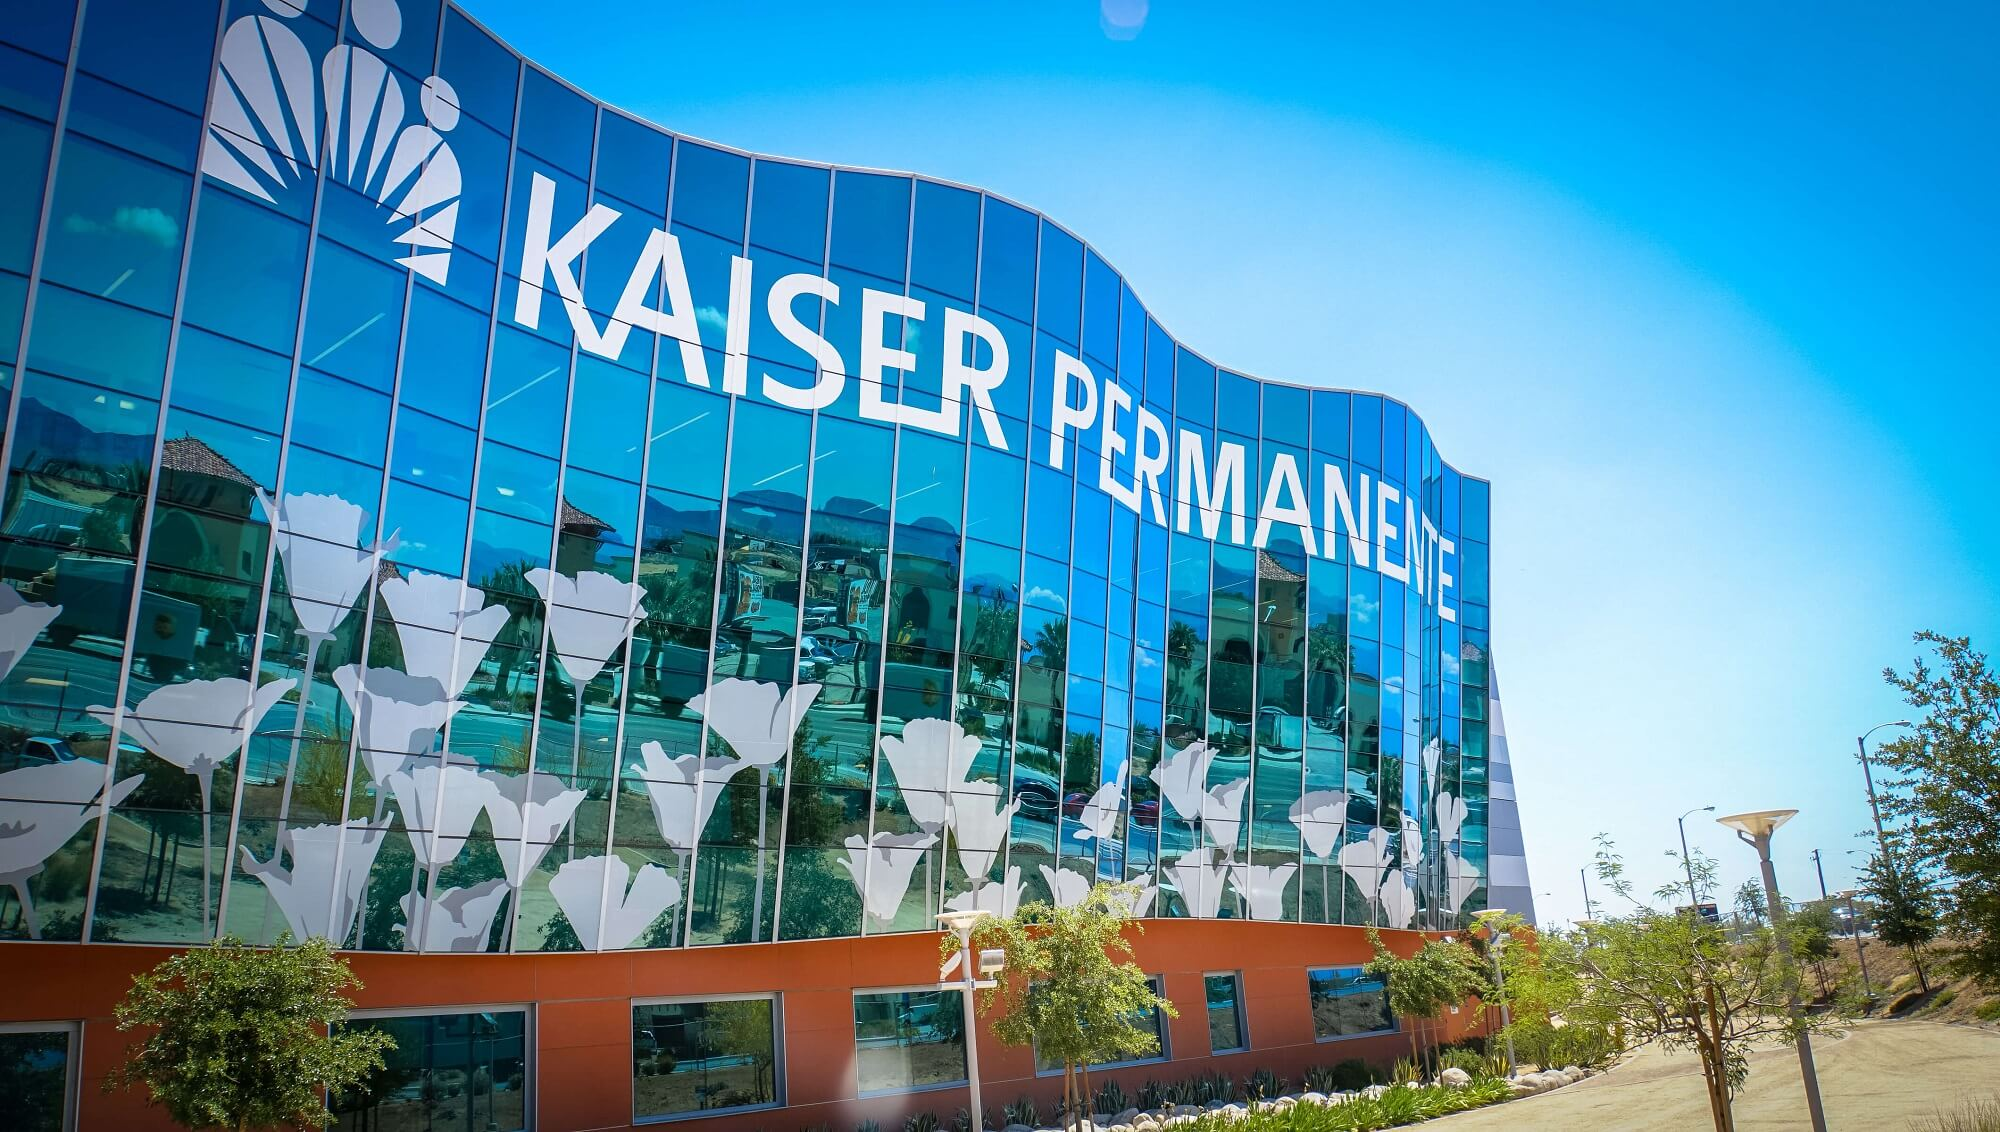 Kaiser Permanente's health system reaches carbon-neutral status |  FierceHealthcare